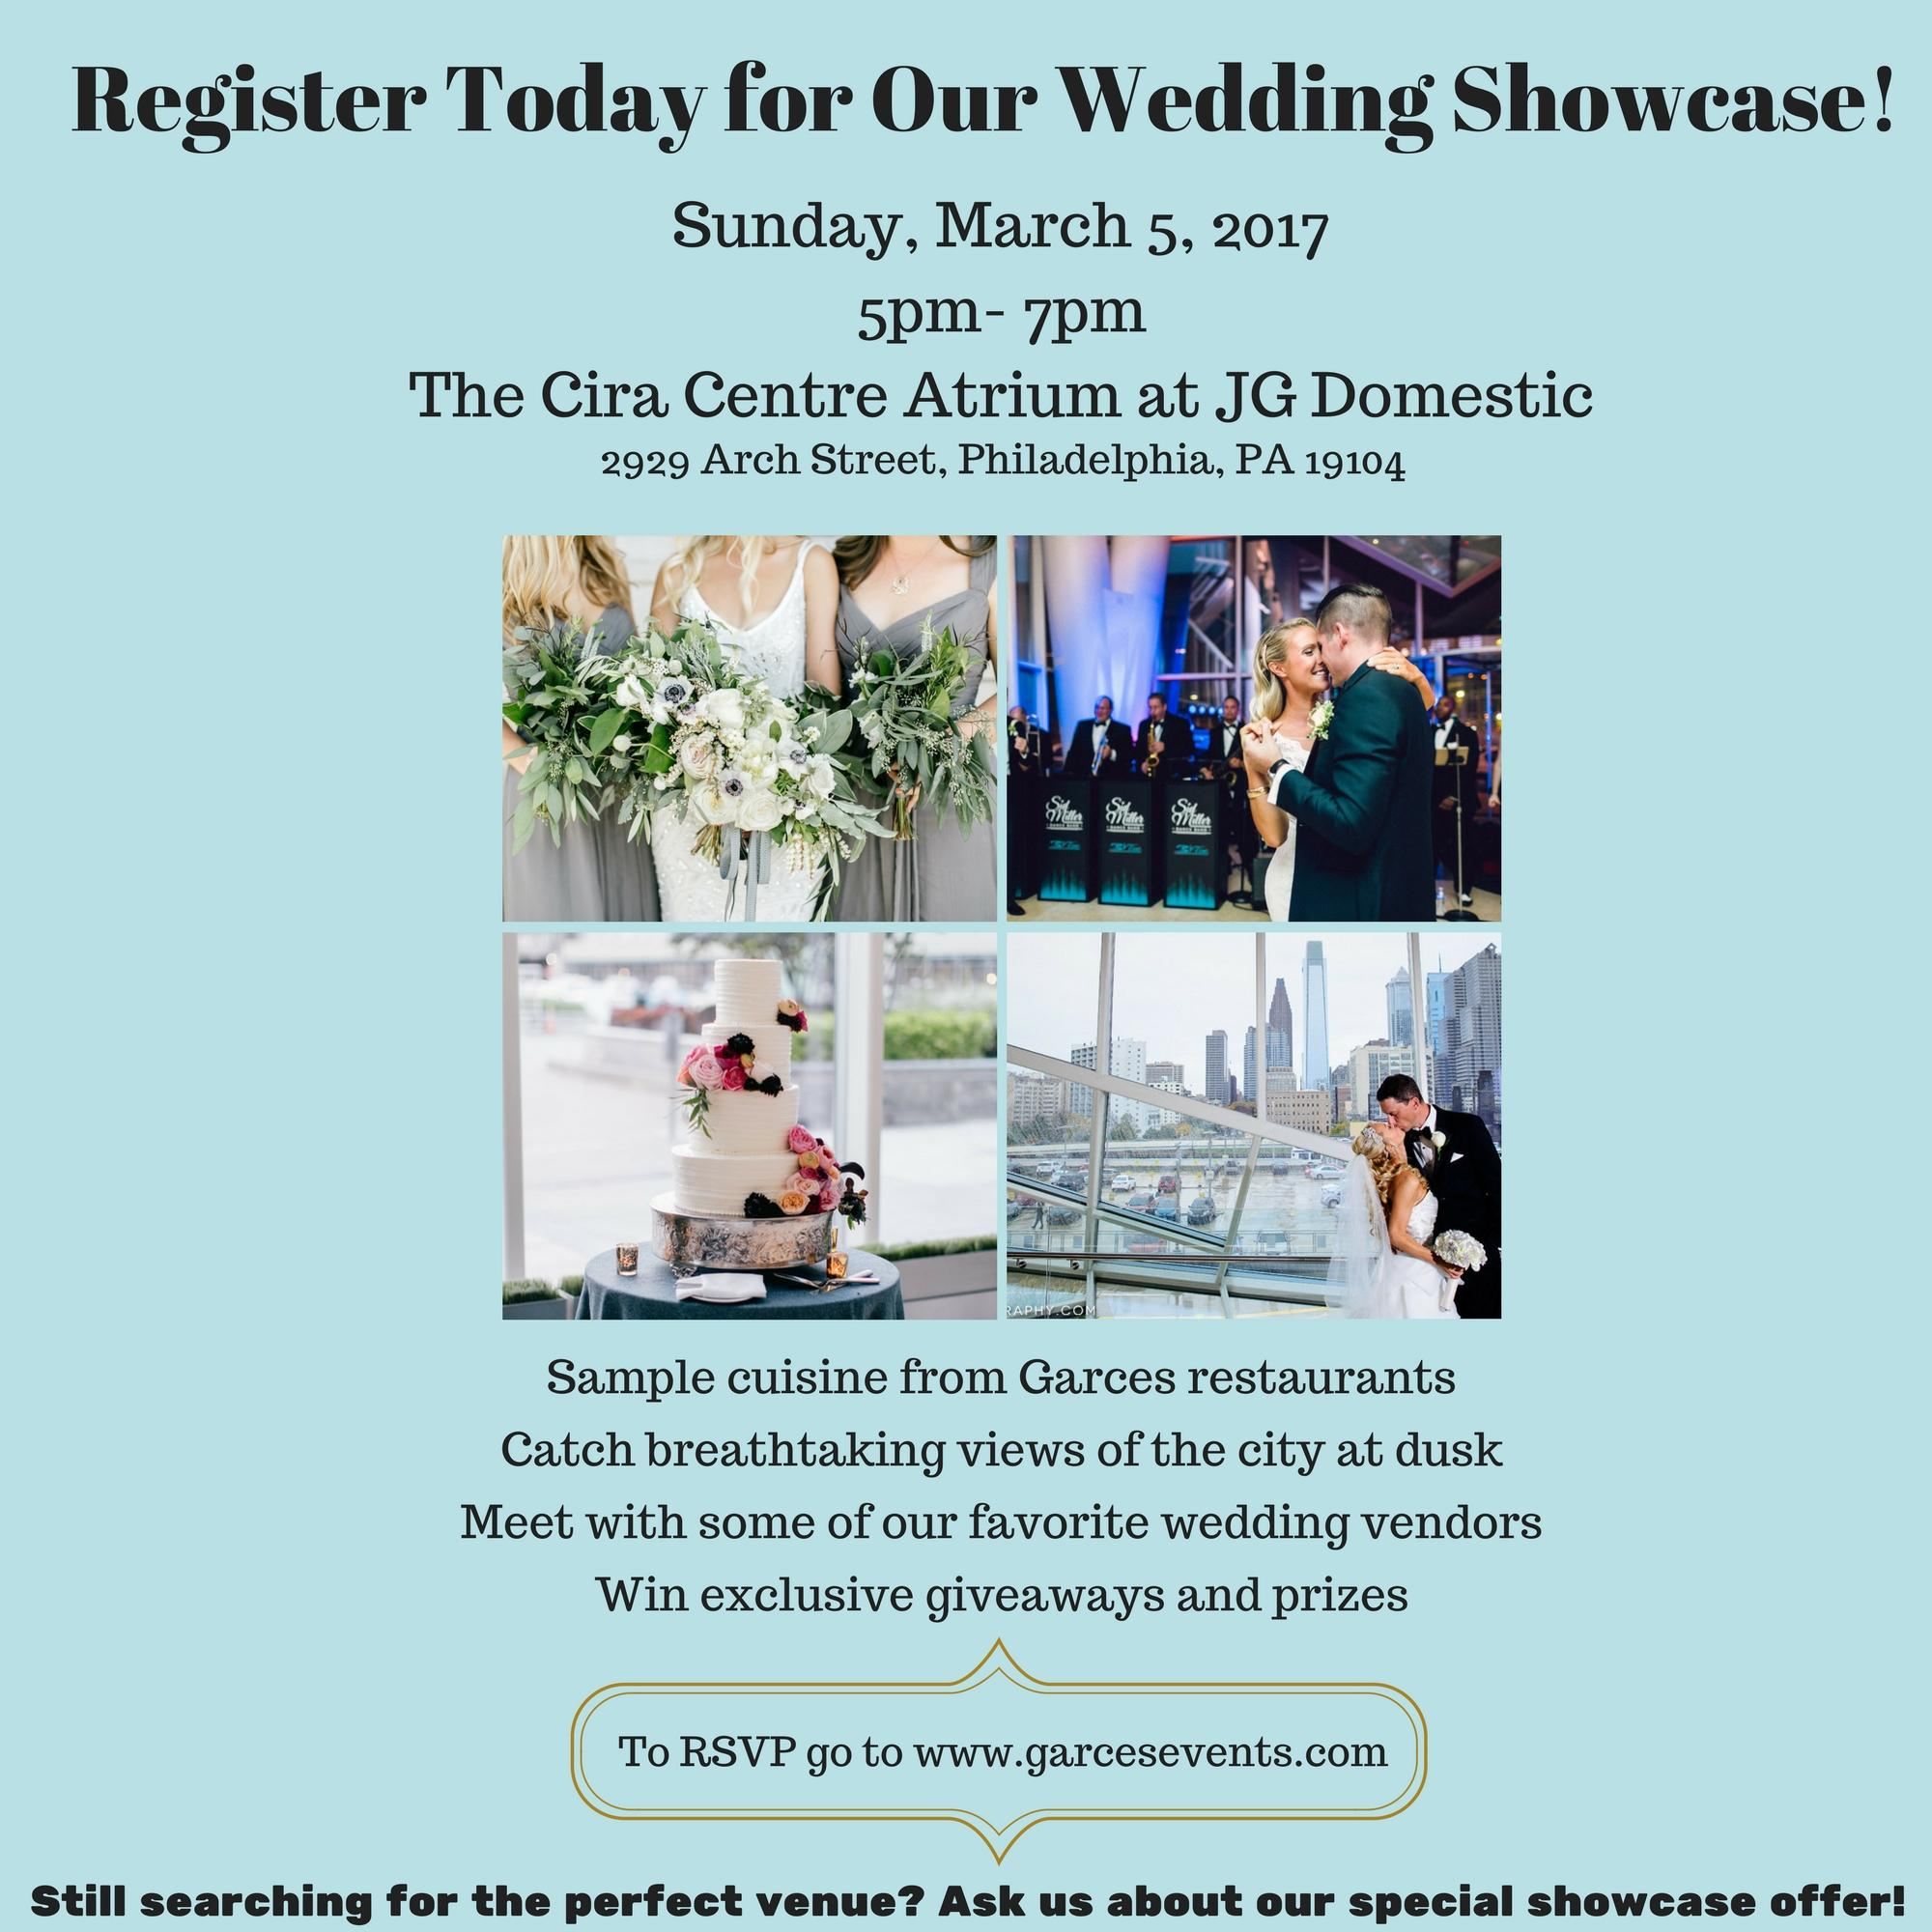 Garces Events Wedding Showcase at The Cira Centre Atrium at JG Domestic Philly In Love Philadelphia Weddings